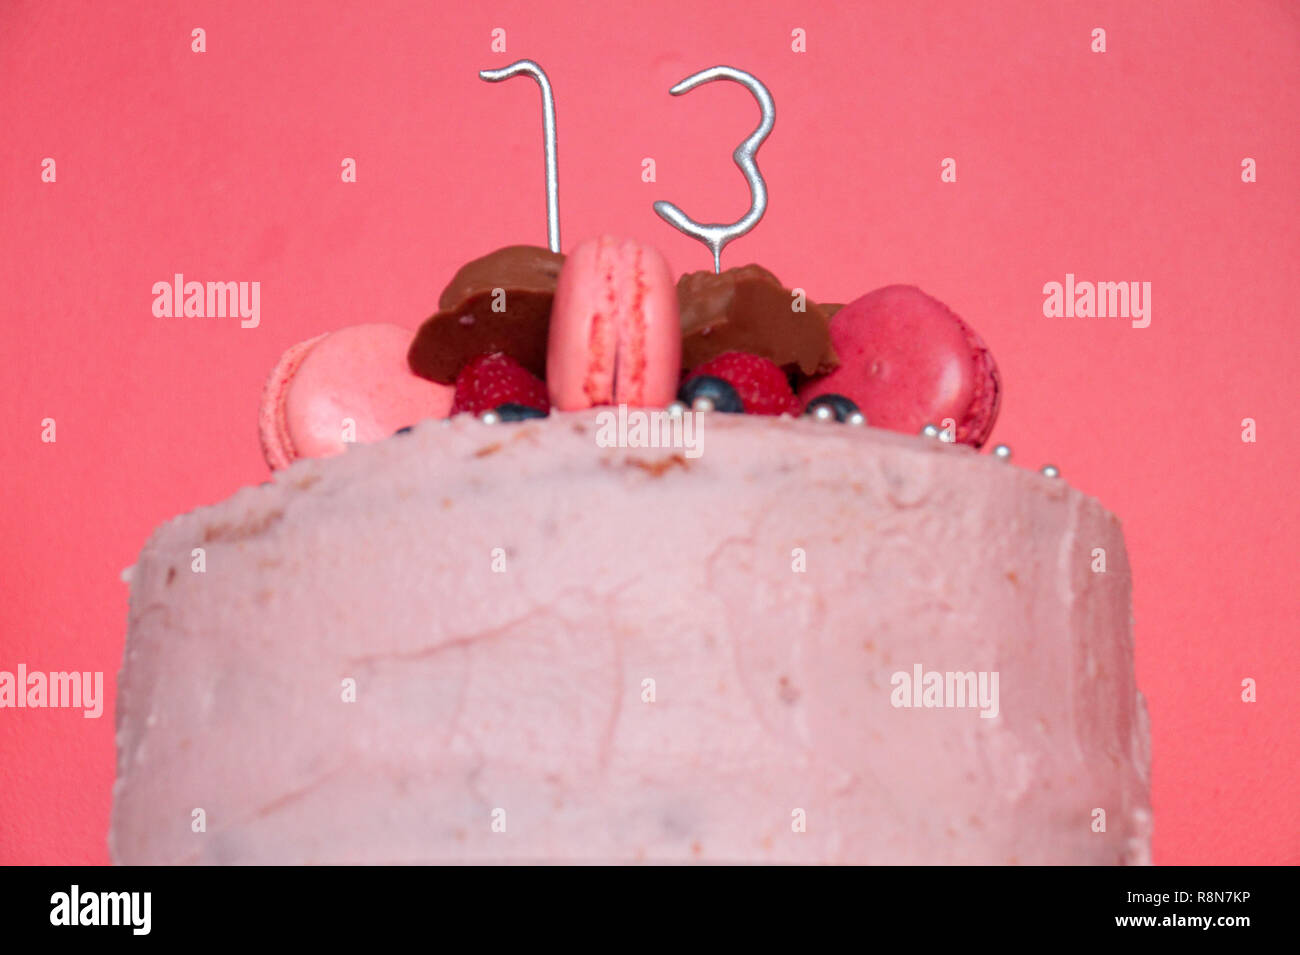 Superb Birthday Cake For 13 Year Old Girl Stock Photo 229119066 Alamy Funny Birthday Cards Online Alyptdamsfinfo